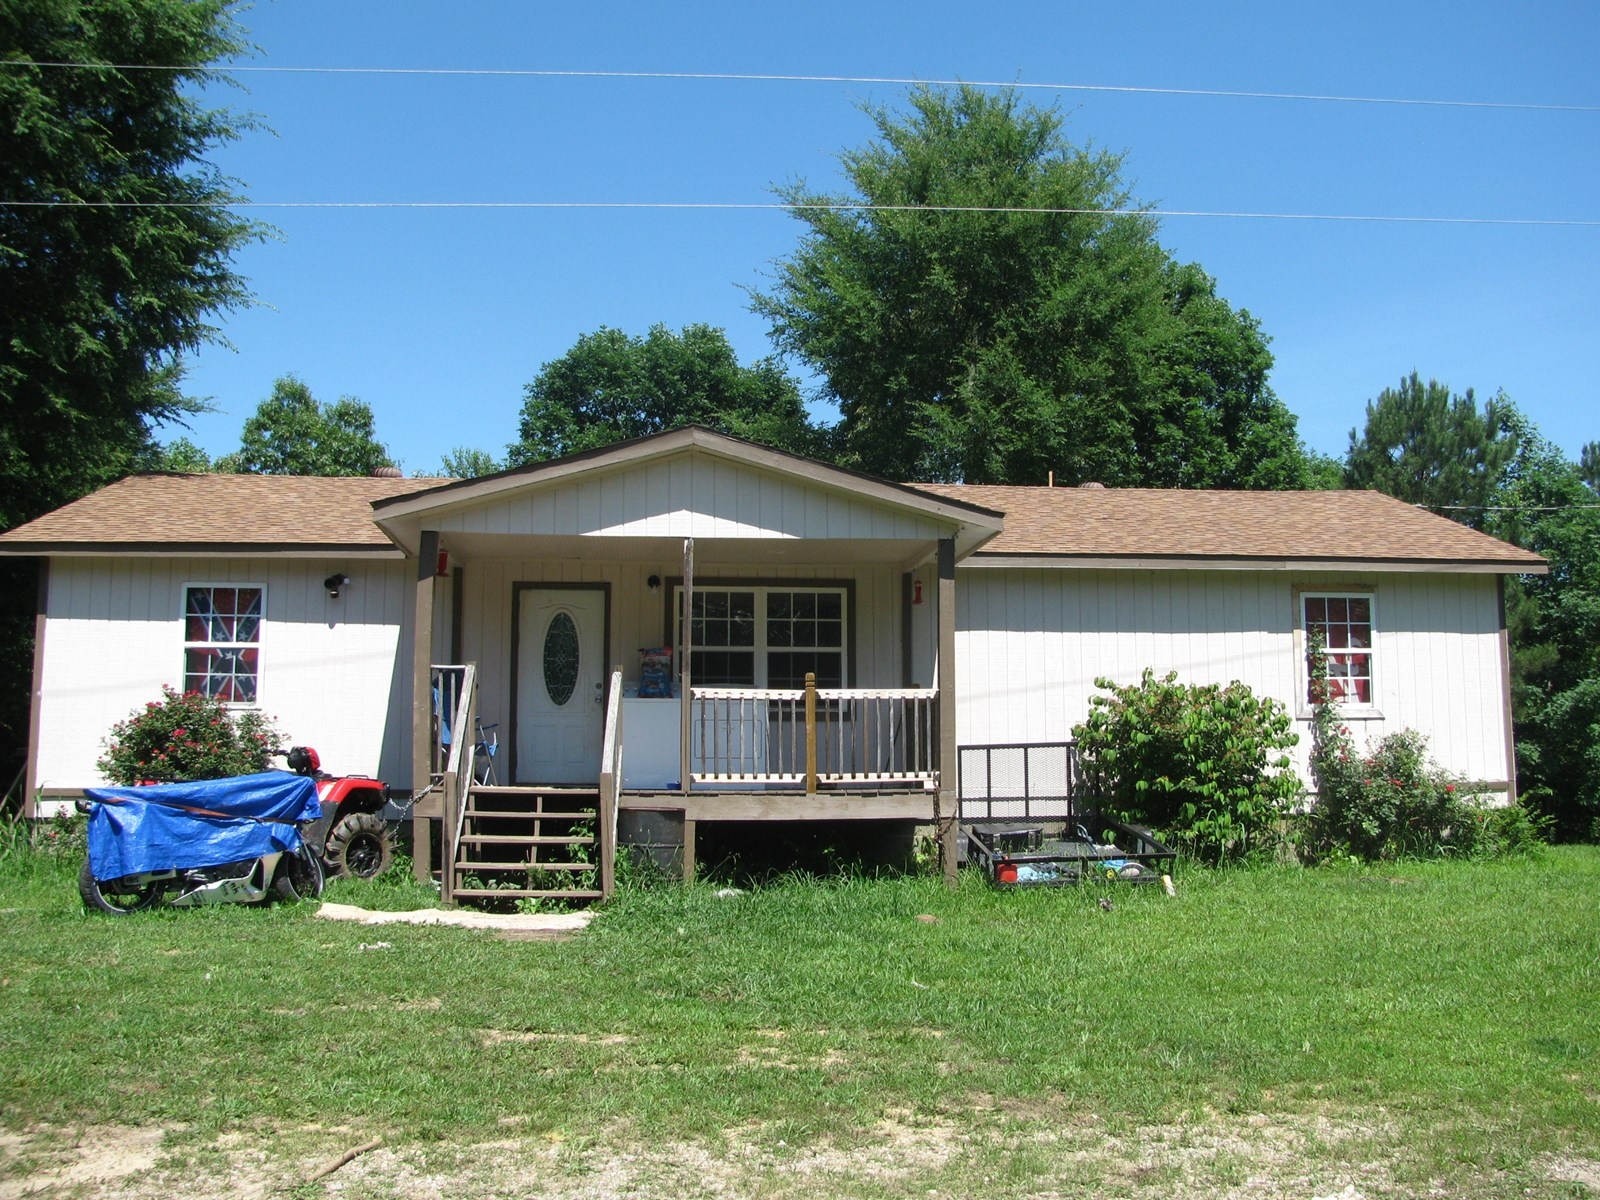 COUNTRY HOME ON 8 ACRES IN ADAMSVILLE, TN FOR SALE